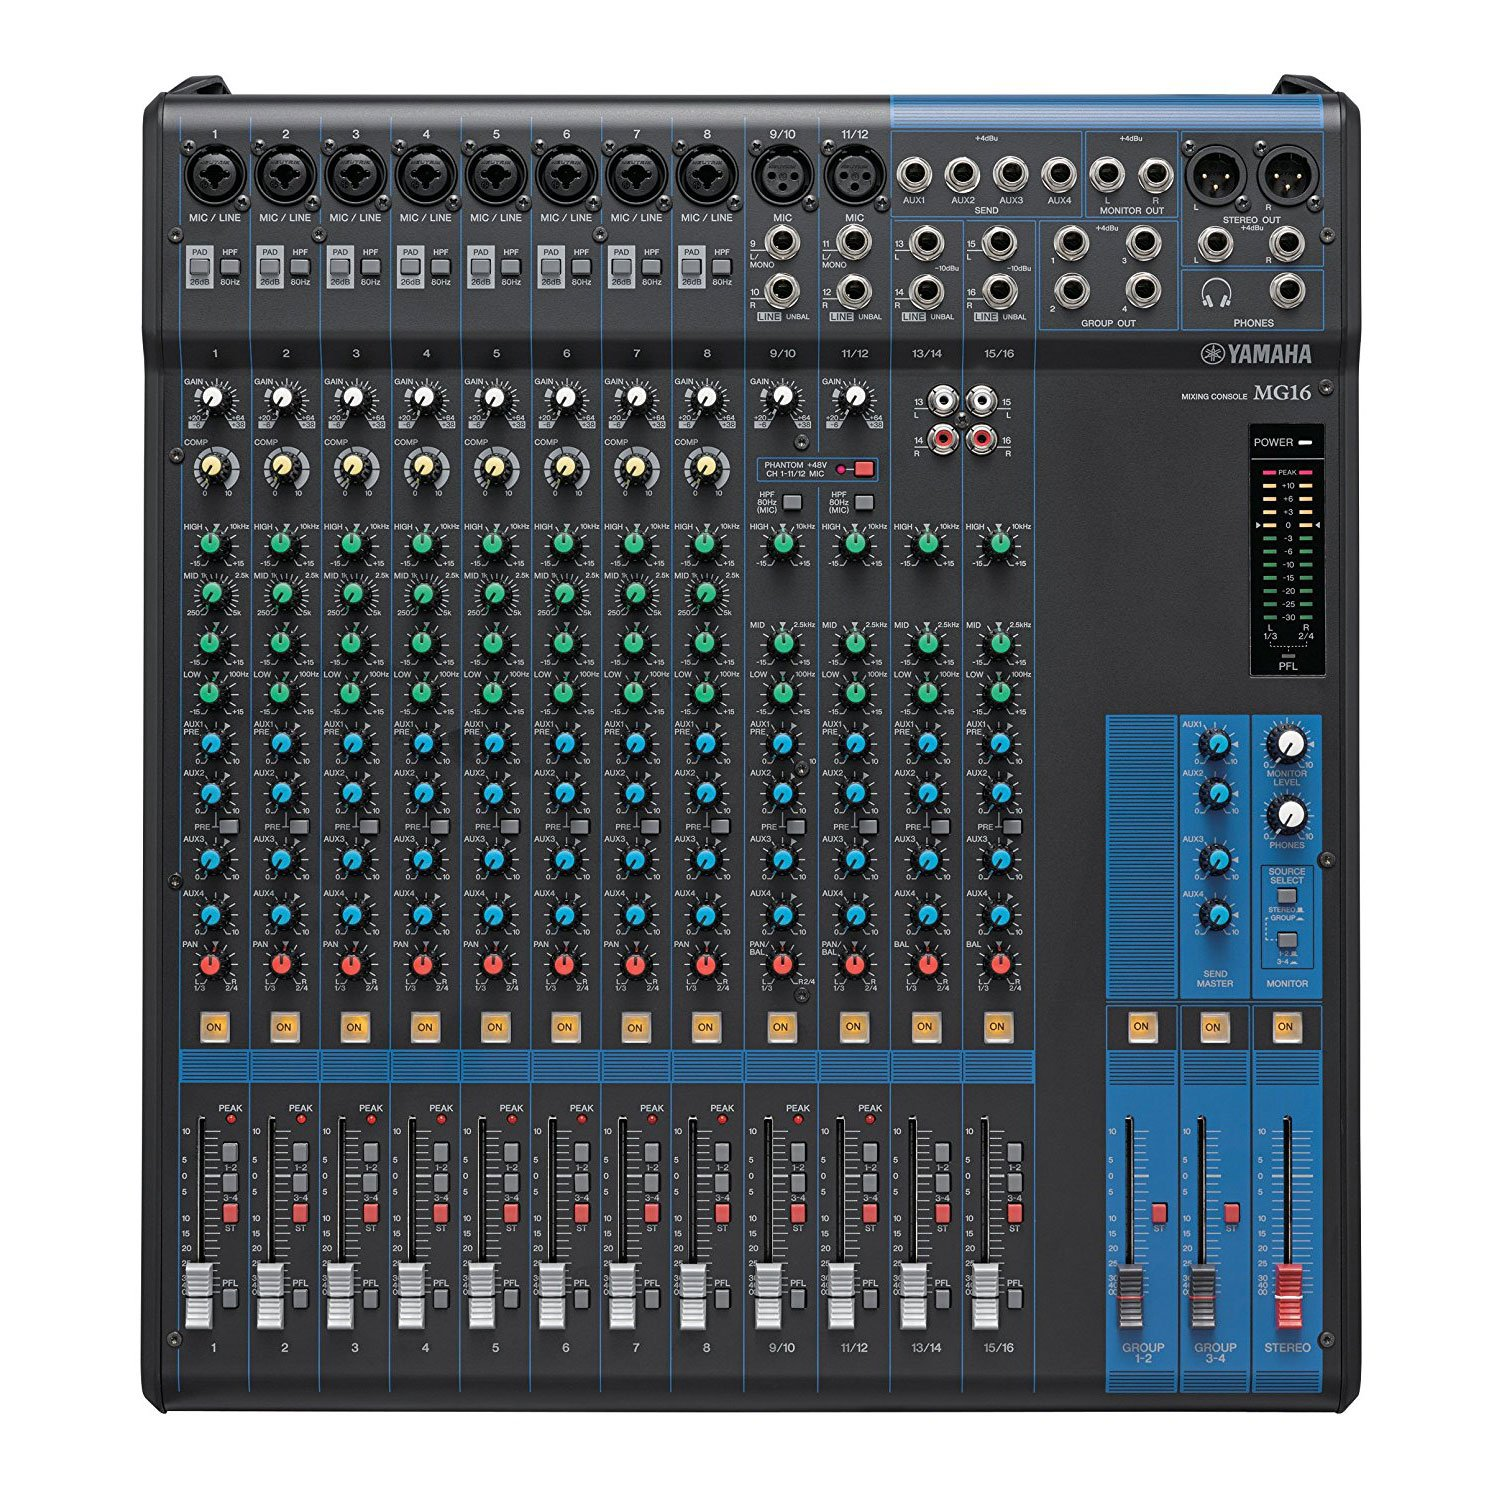 EQ Yamaha MG12 Analog 12 Channel Audio Mixer with 6 Microphone Preamps 4 Dedicated Stereo Line Channel 2 Aux Sends Mixer Bundle 1-knob Compressors with 4 Mixer Cable and Zorro Sounds Mixer Cloth